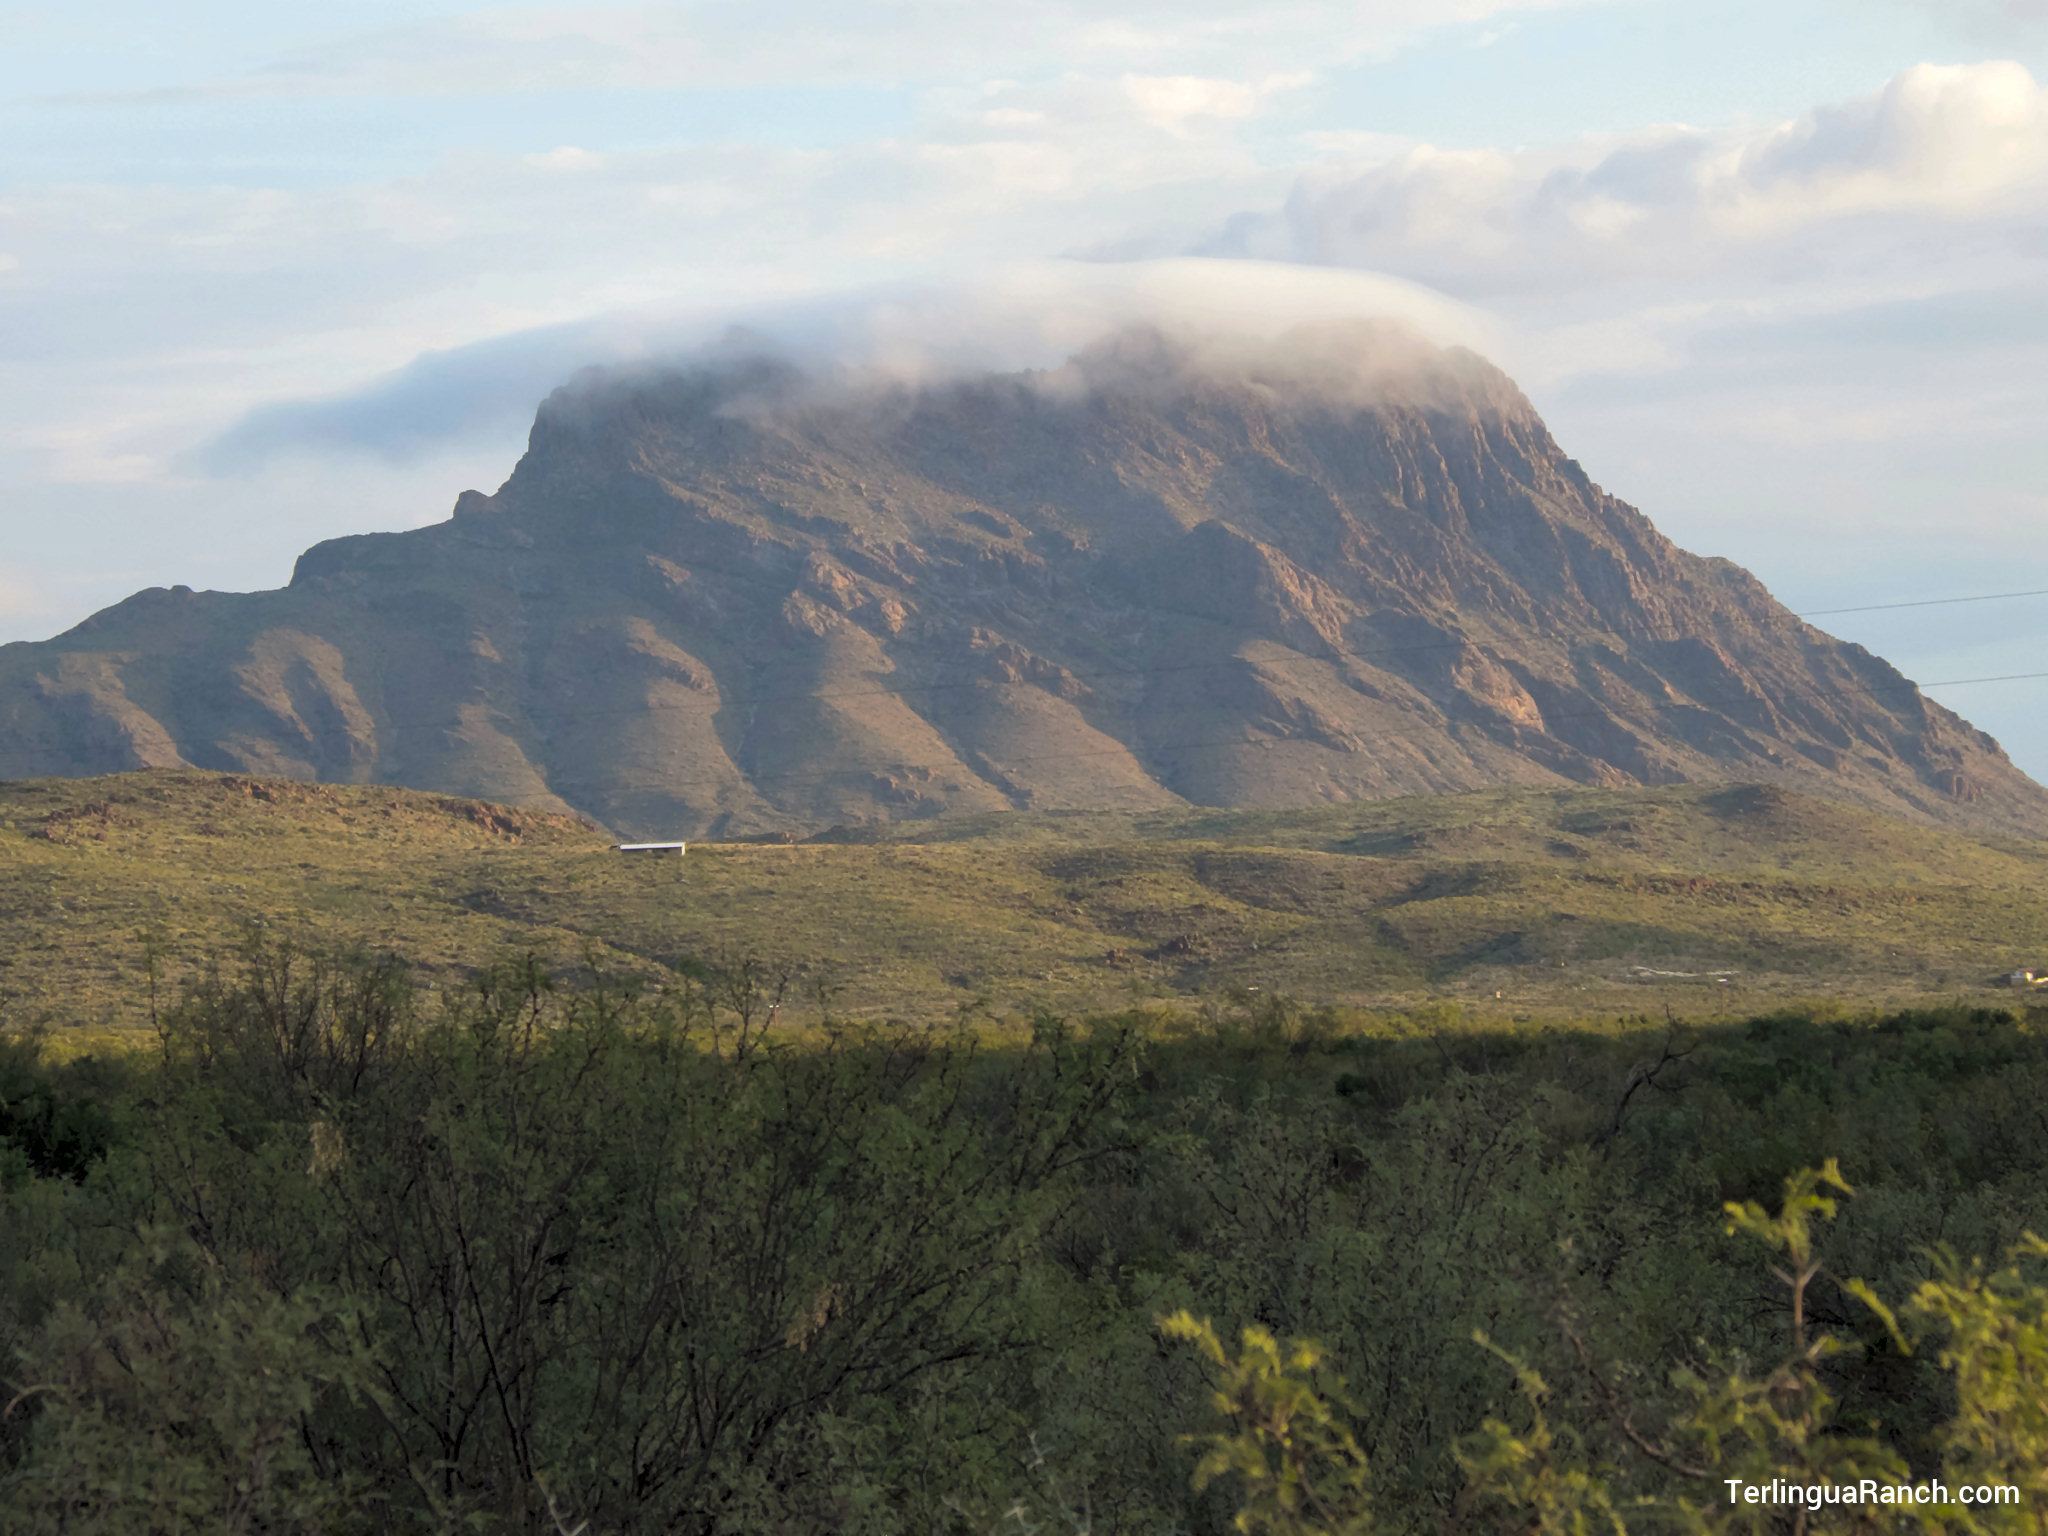 Big Bend Rv Parks The Park At Terlingua Ranch Lodge Resort 50 Amp Service For They Provide Offer 15 20 30 And Electricity Plus Water Sewer Connections Can Easily Accommodate Larger Rvs